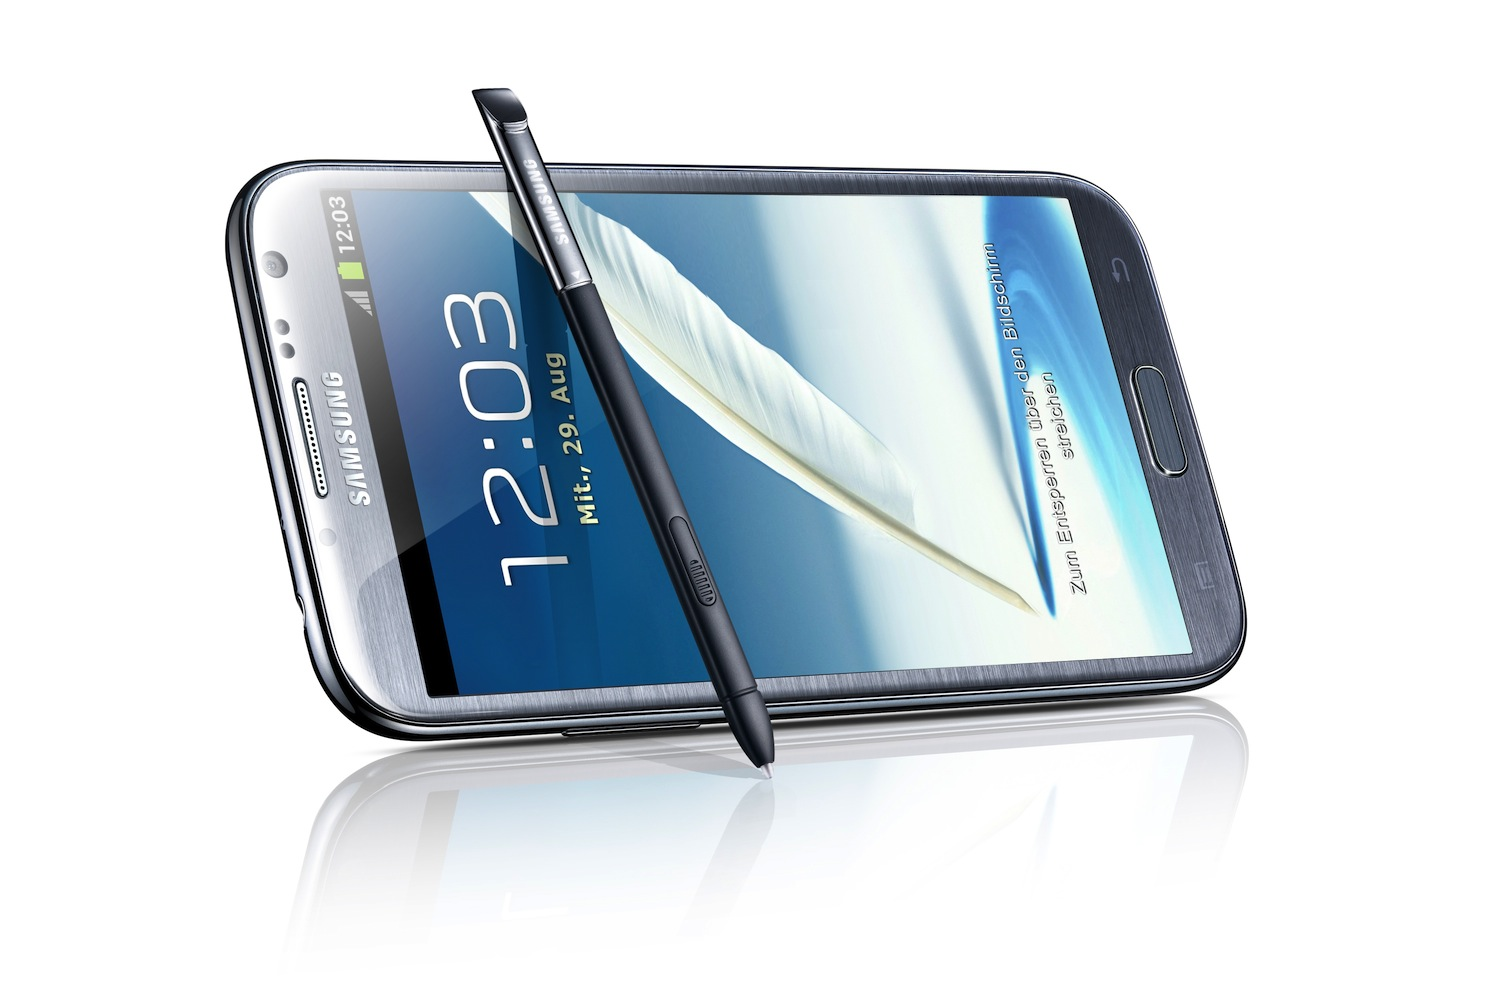 Review Samsung Galaxy Note Ii Gt N7100 Smartphone Notebookcheck Circuit Board 2 Best Durable Case Cell Phones In